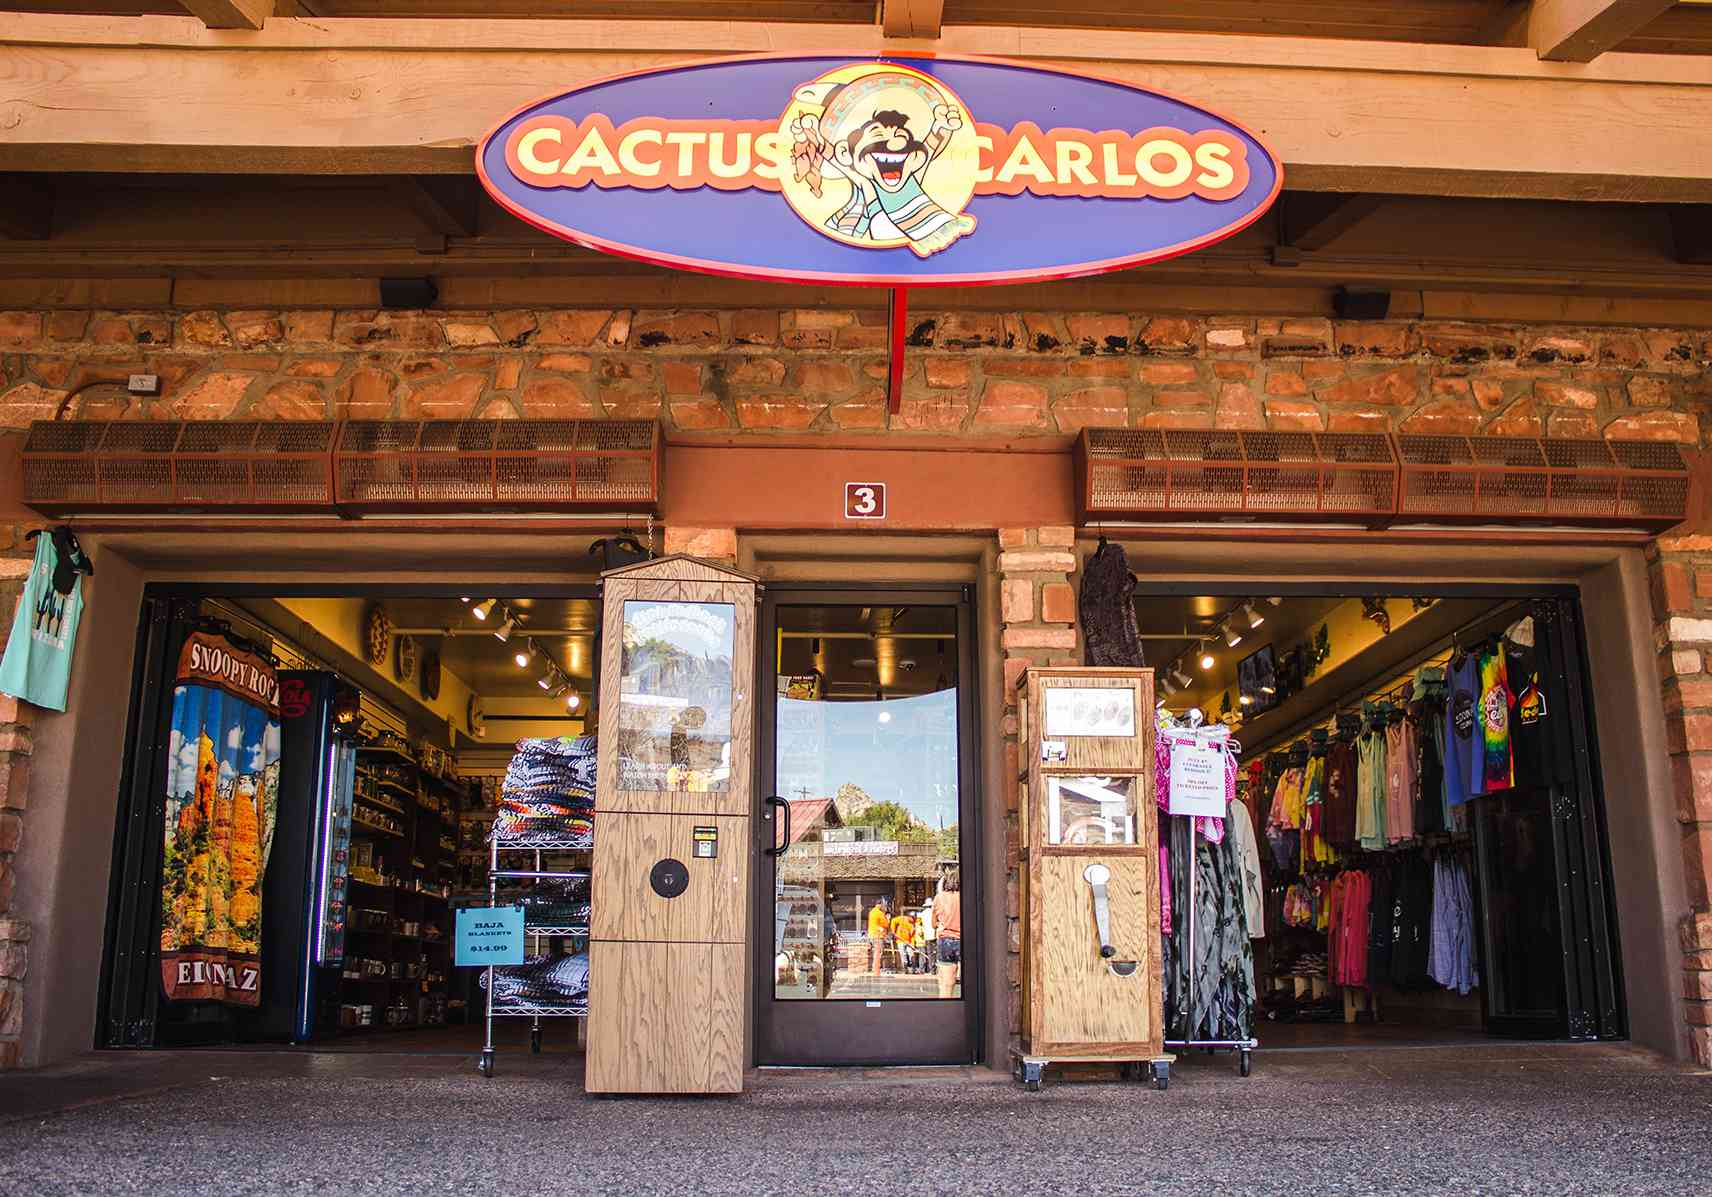 Low angle view of the entry to Cactus Carlos, a souvenir shop. There is a sign above the door that says